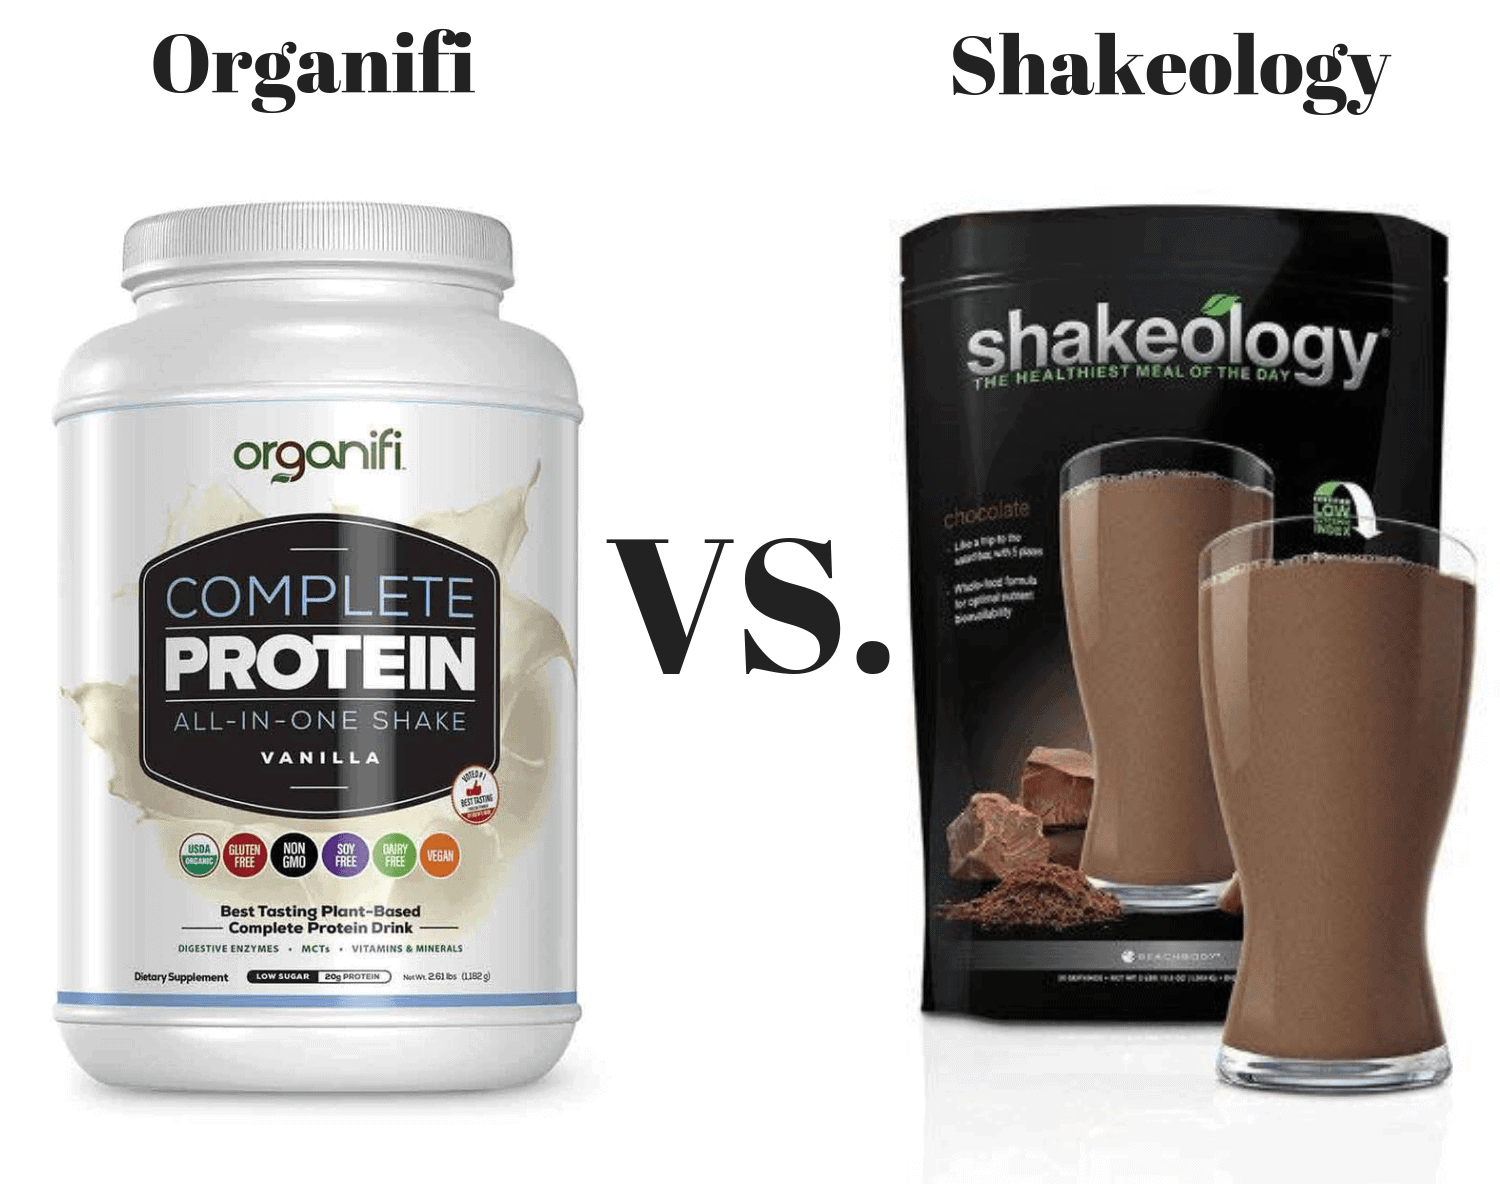 Organifi vs Shakeology